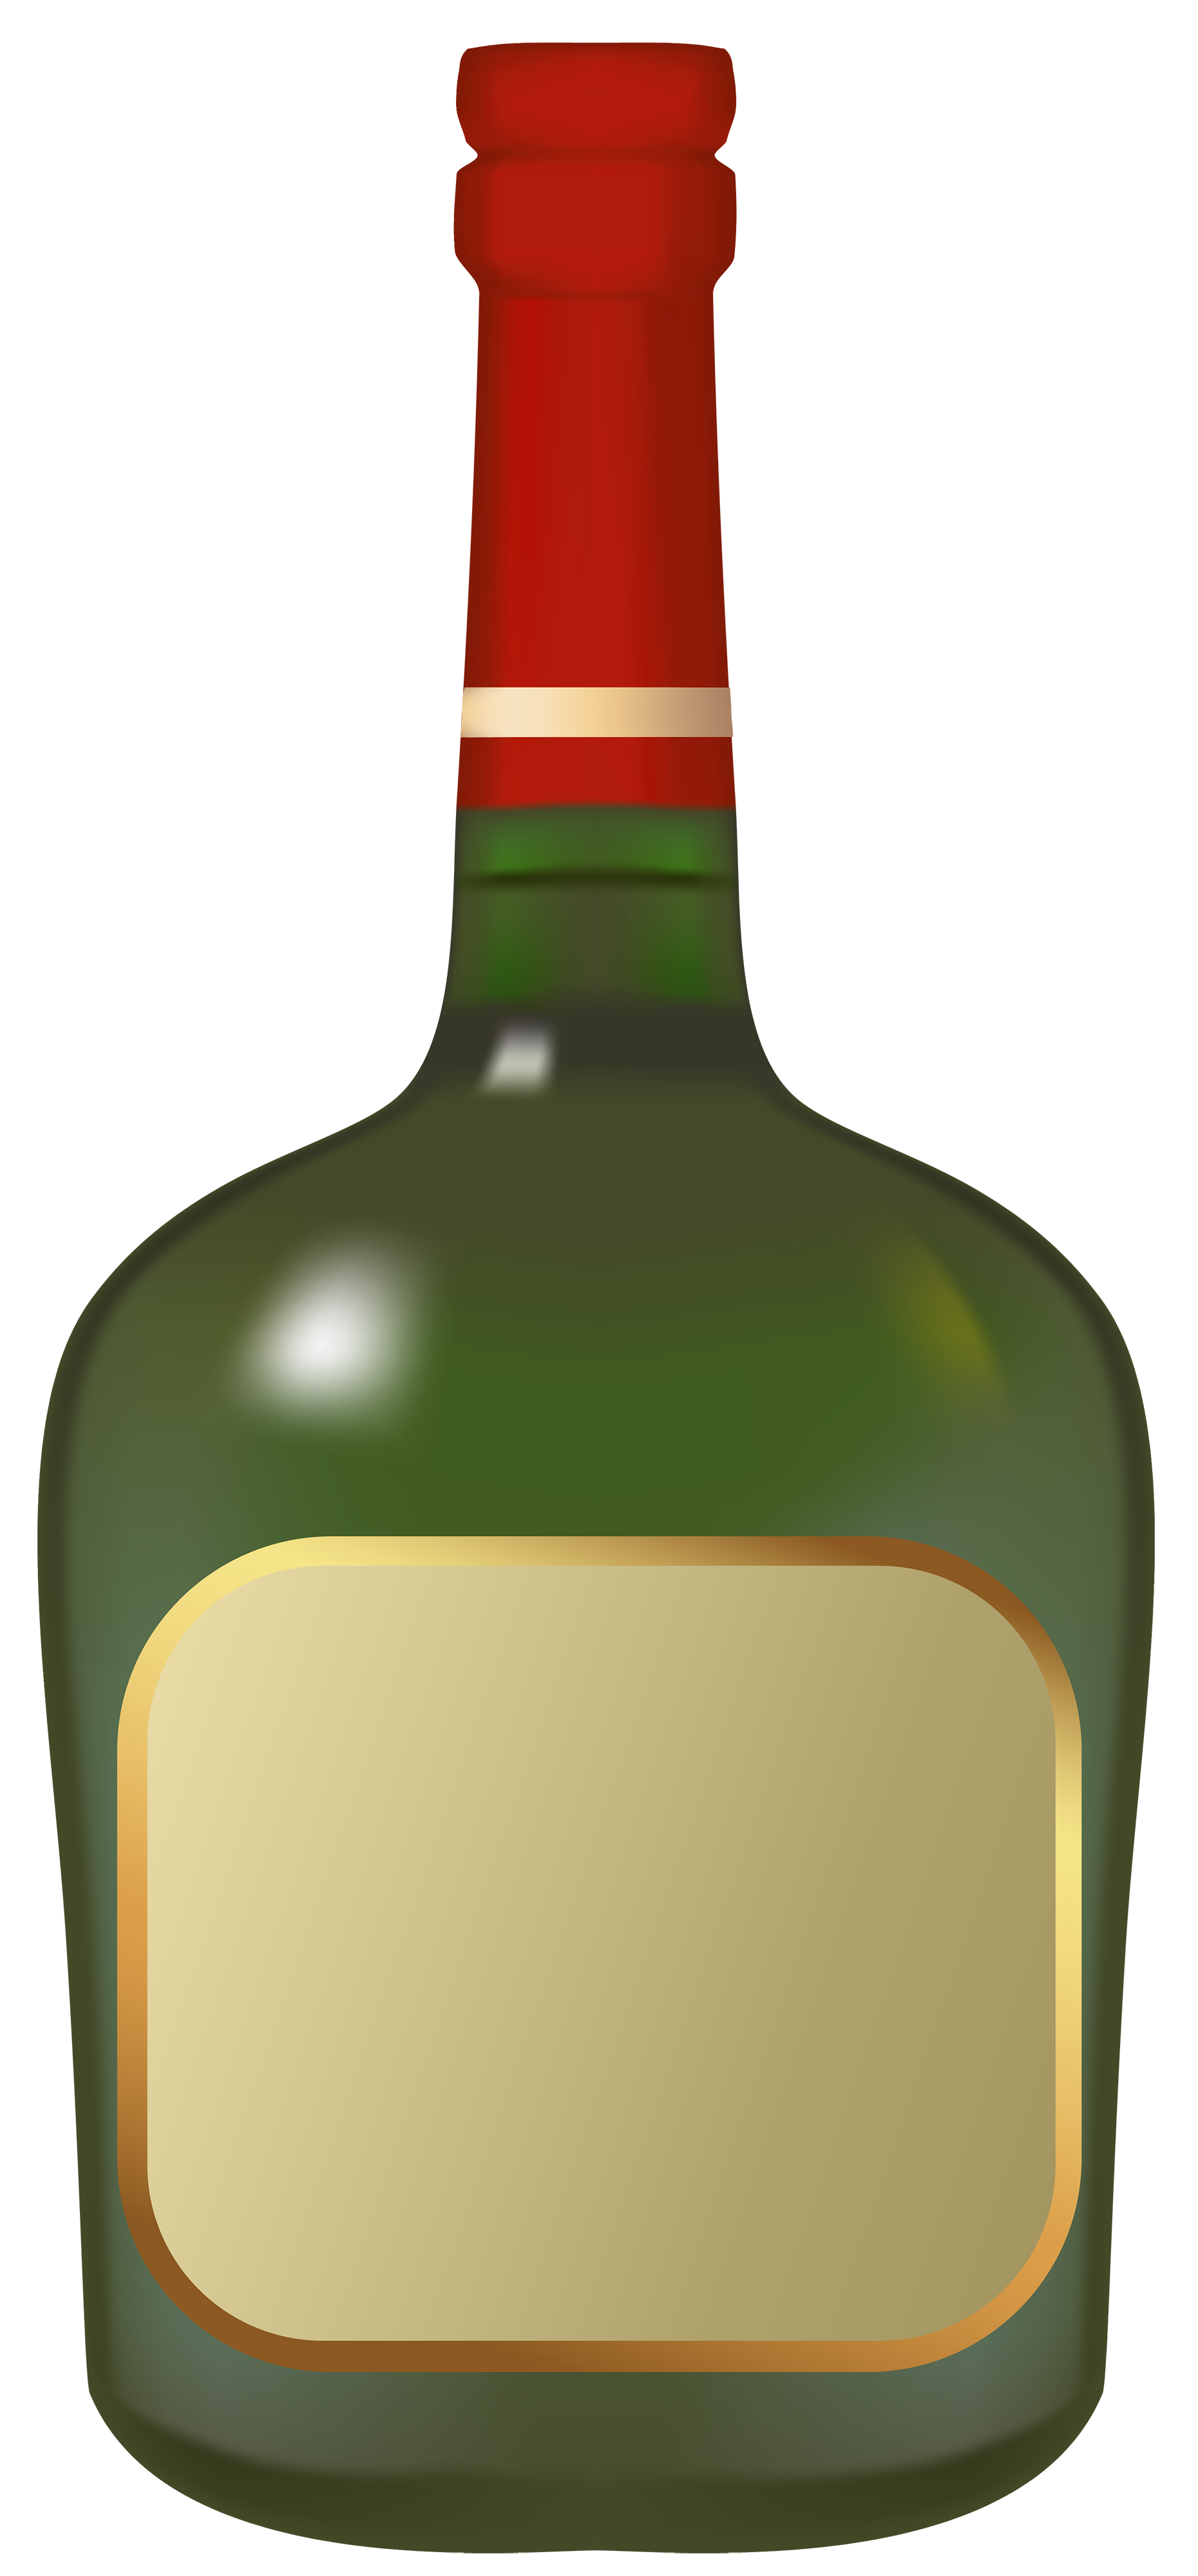 Bottle clipart alcohol. Liquor png best web